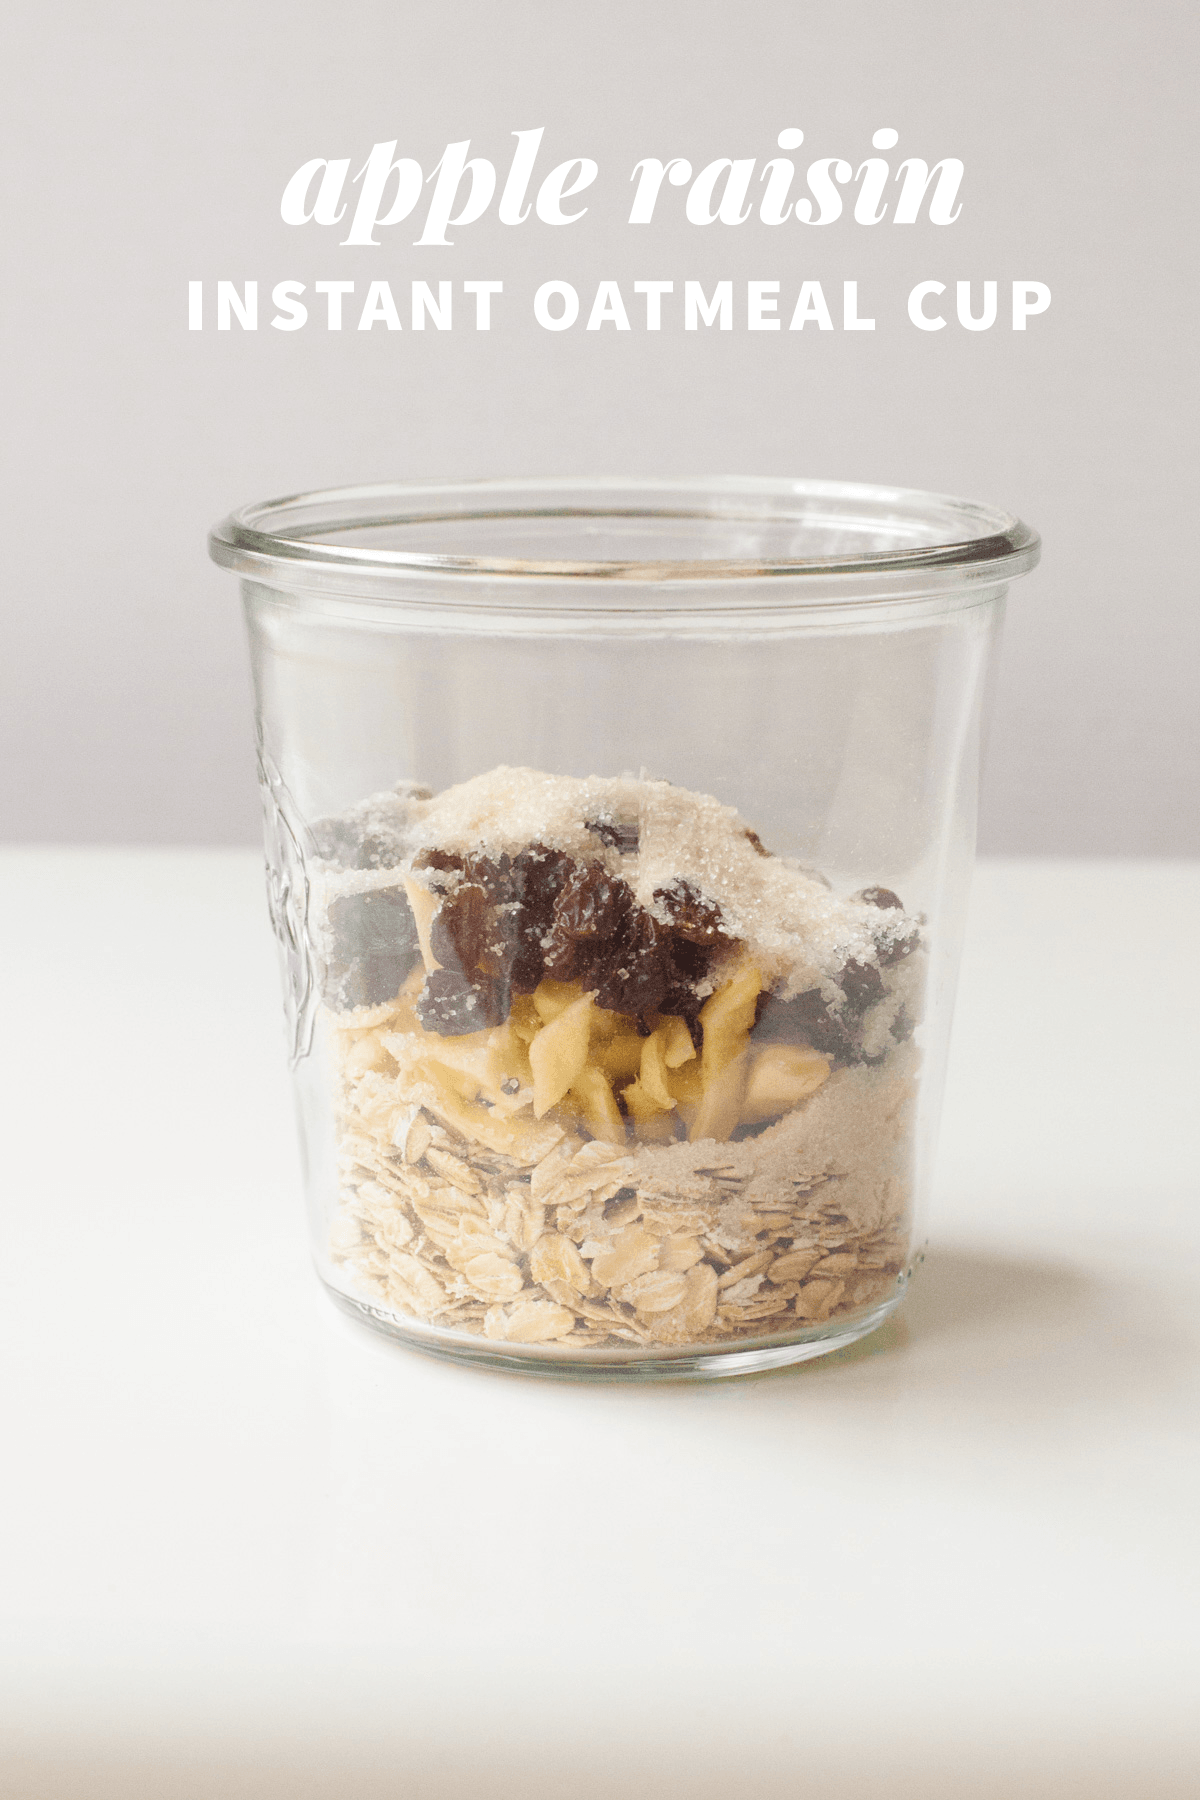 Healthy Instant Oatmeal Cups—Apple Raisin